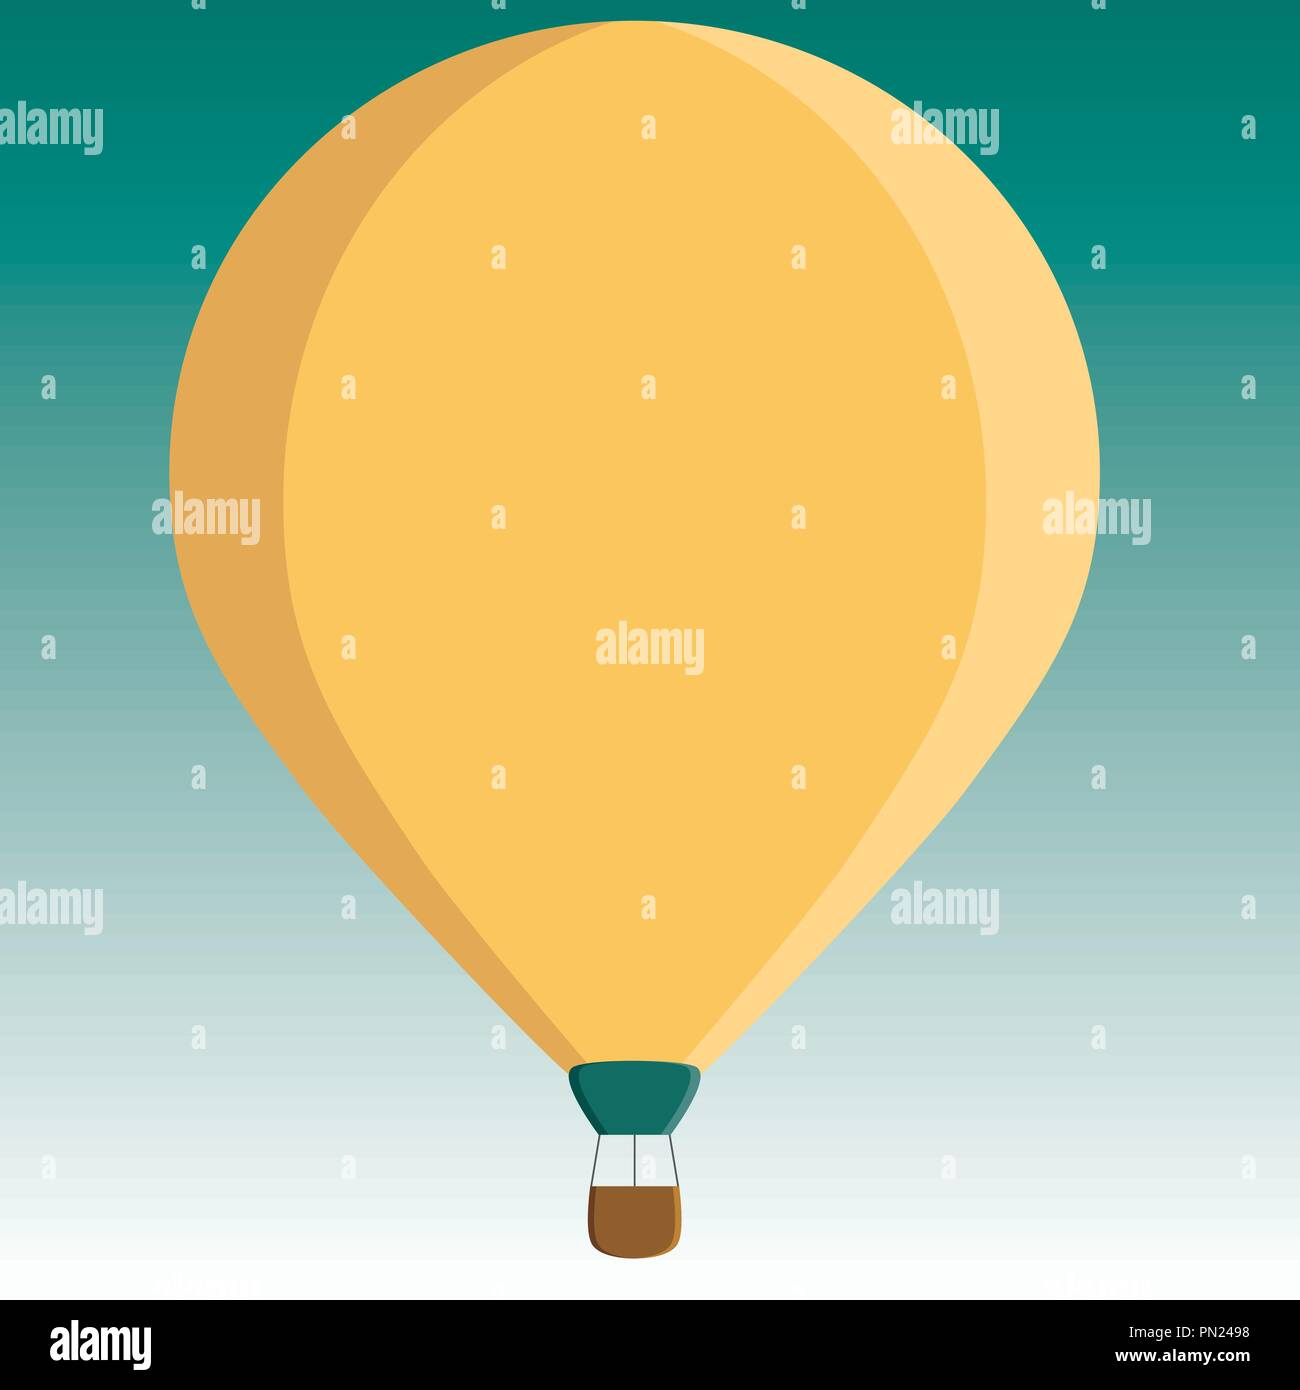 Flat Design Business Vector Illustration Empty Template Layout For Voucher Three Invitation Greeting Card Promotion Poster Toned Color Hot Air Balloo